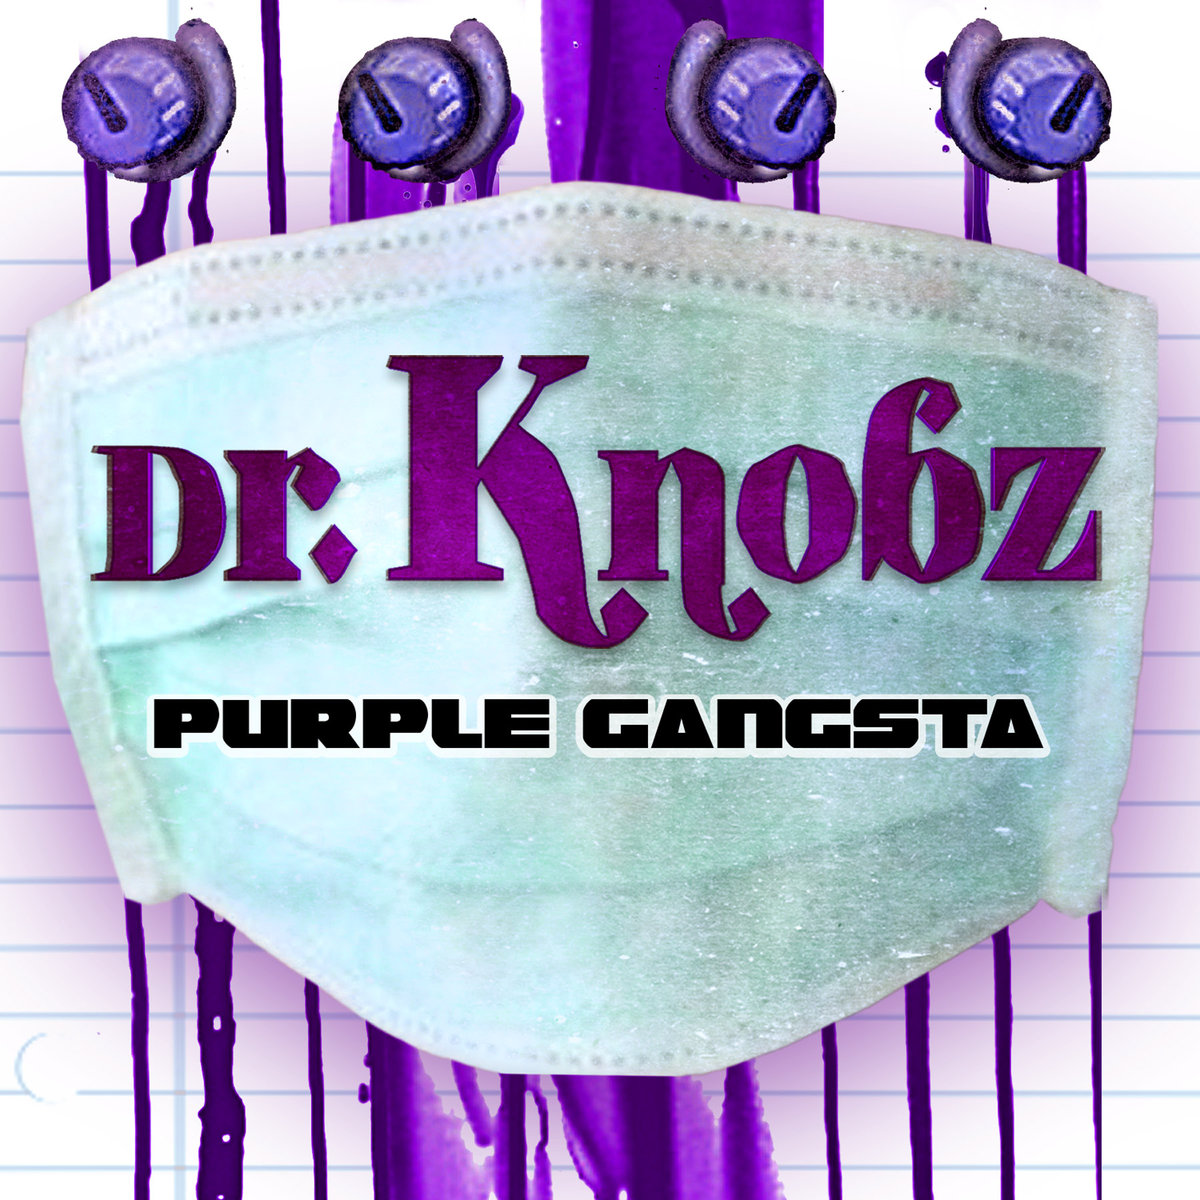 Dr. Knobz - Purple Gangsta (Zombie-J Remix) @ 'Purple Gangsta' album (electronic, dubstep)